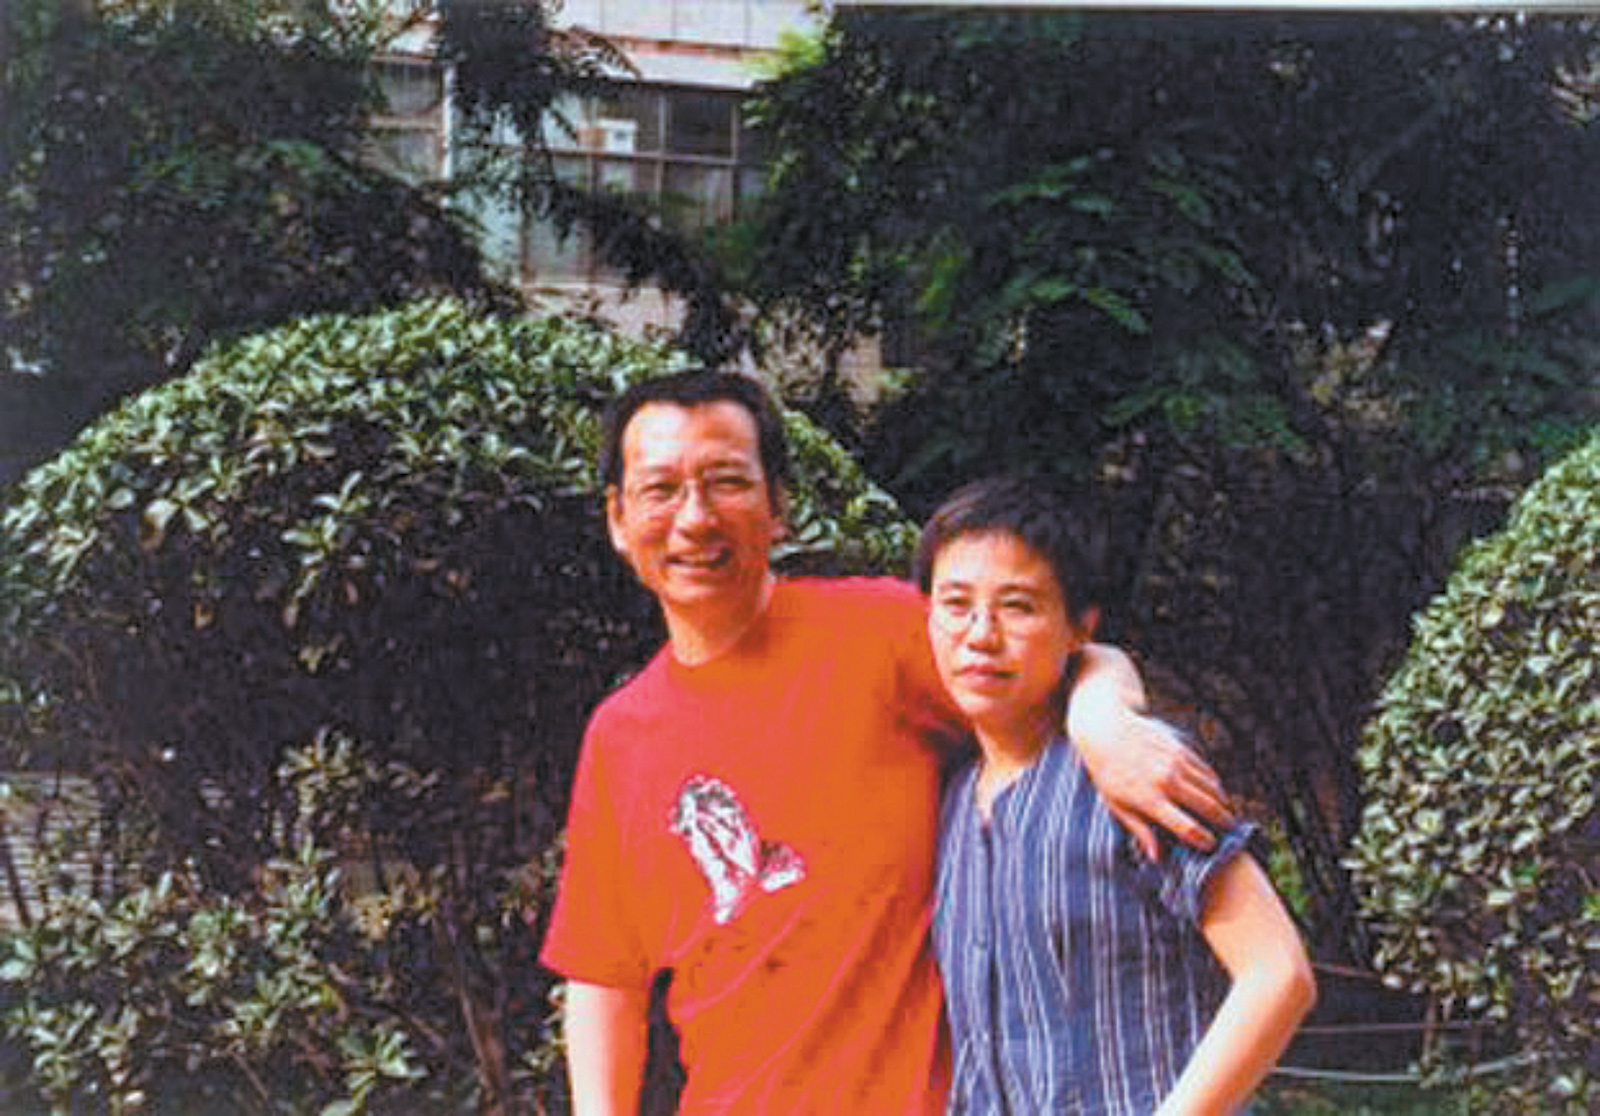 Nobel Peace Prize laureate Liu Xiaobo and his wife Liu Xia in an undated photograph taken before he was sent to prison for 'subversion of state power' after he helped to write Charter 08, a petition that called for 'freedom of speech, freedom of the press, and academic freedom' in China. She remains under house arrest at their apartment in Beijing.